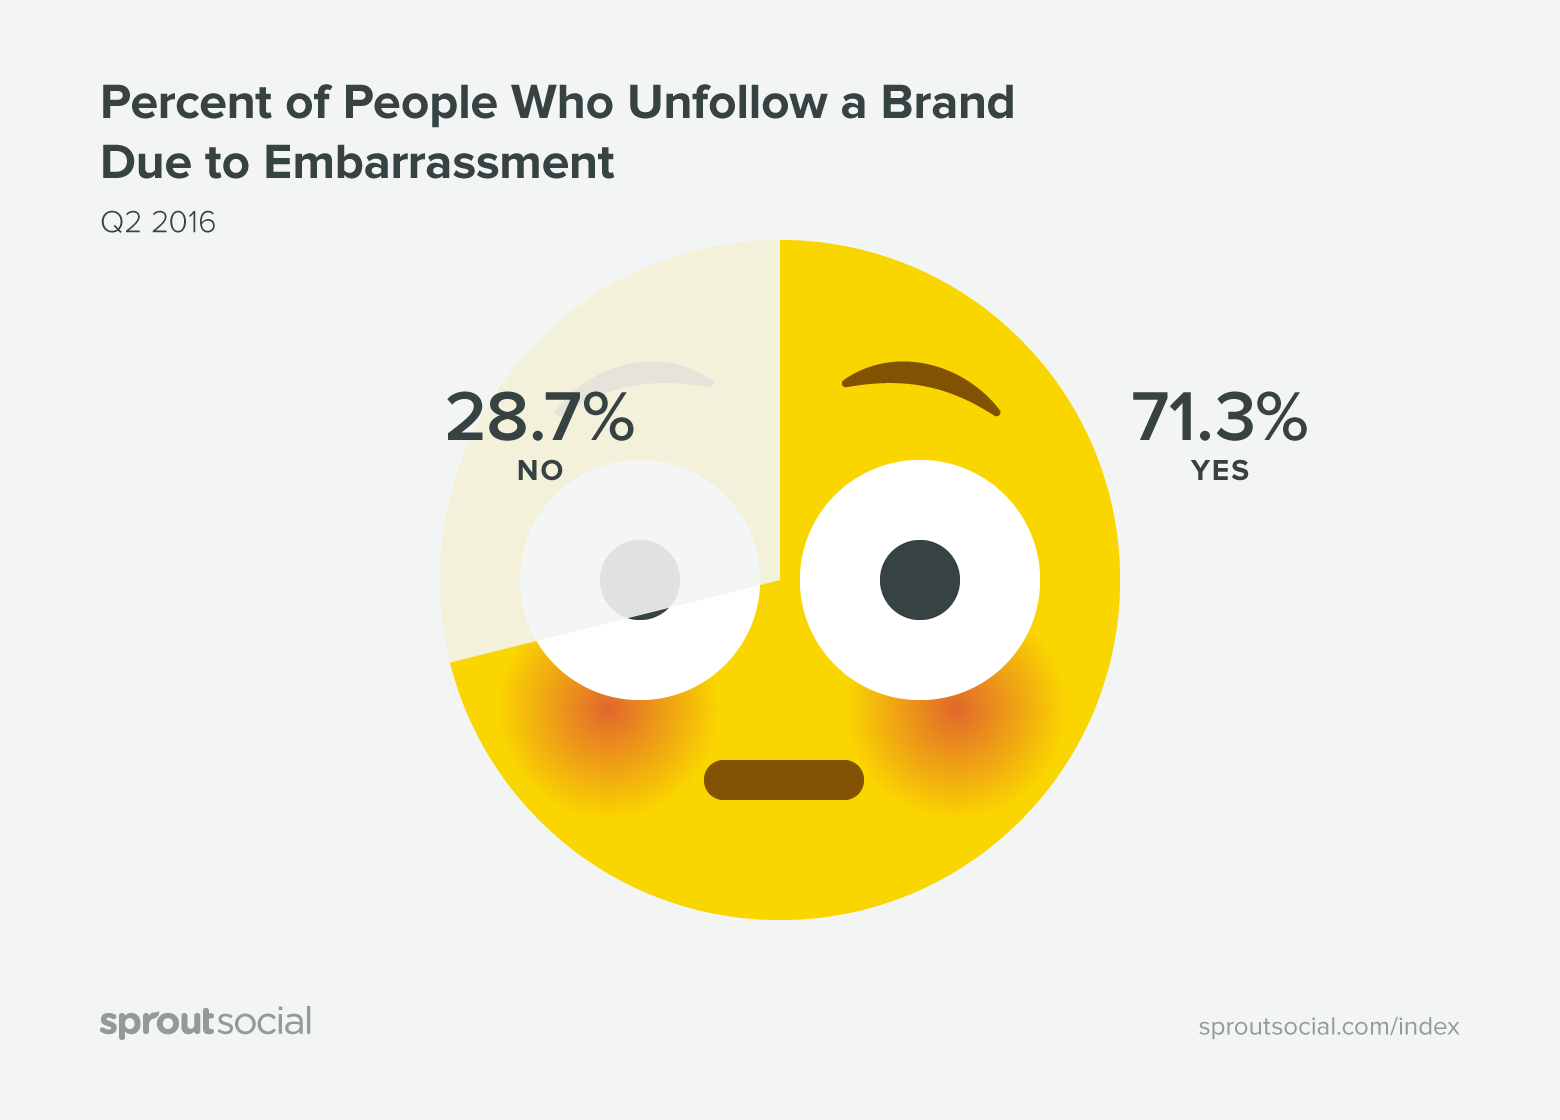 sprout q2 2016 graphic on brand embarrassment